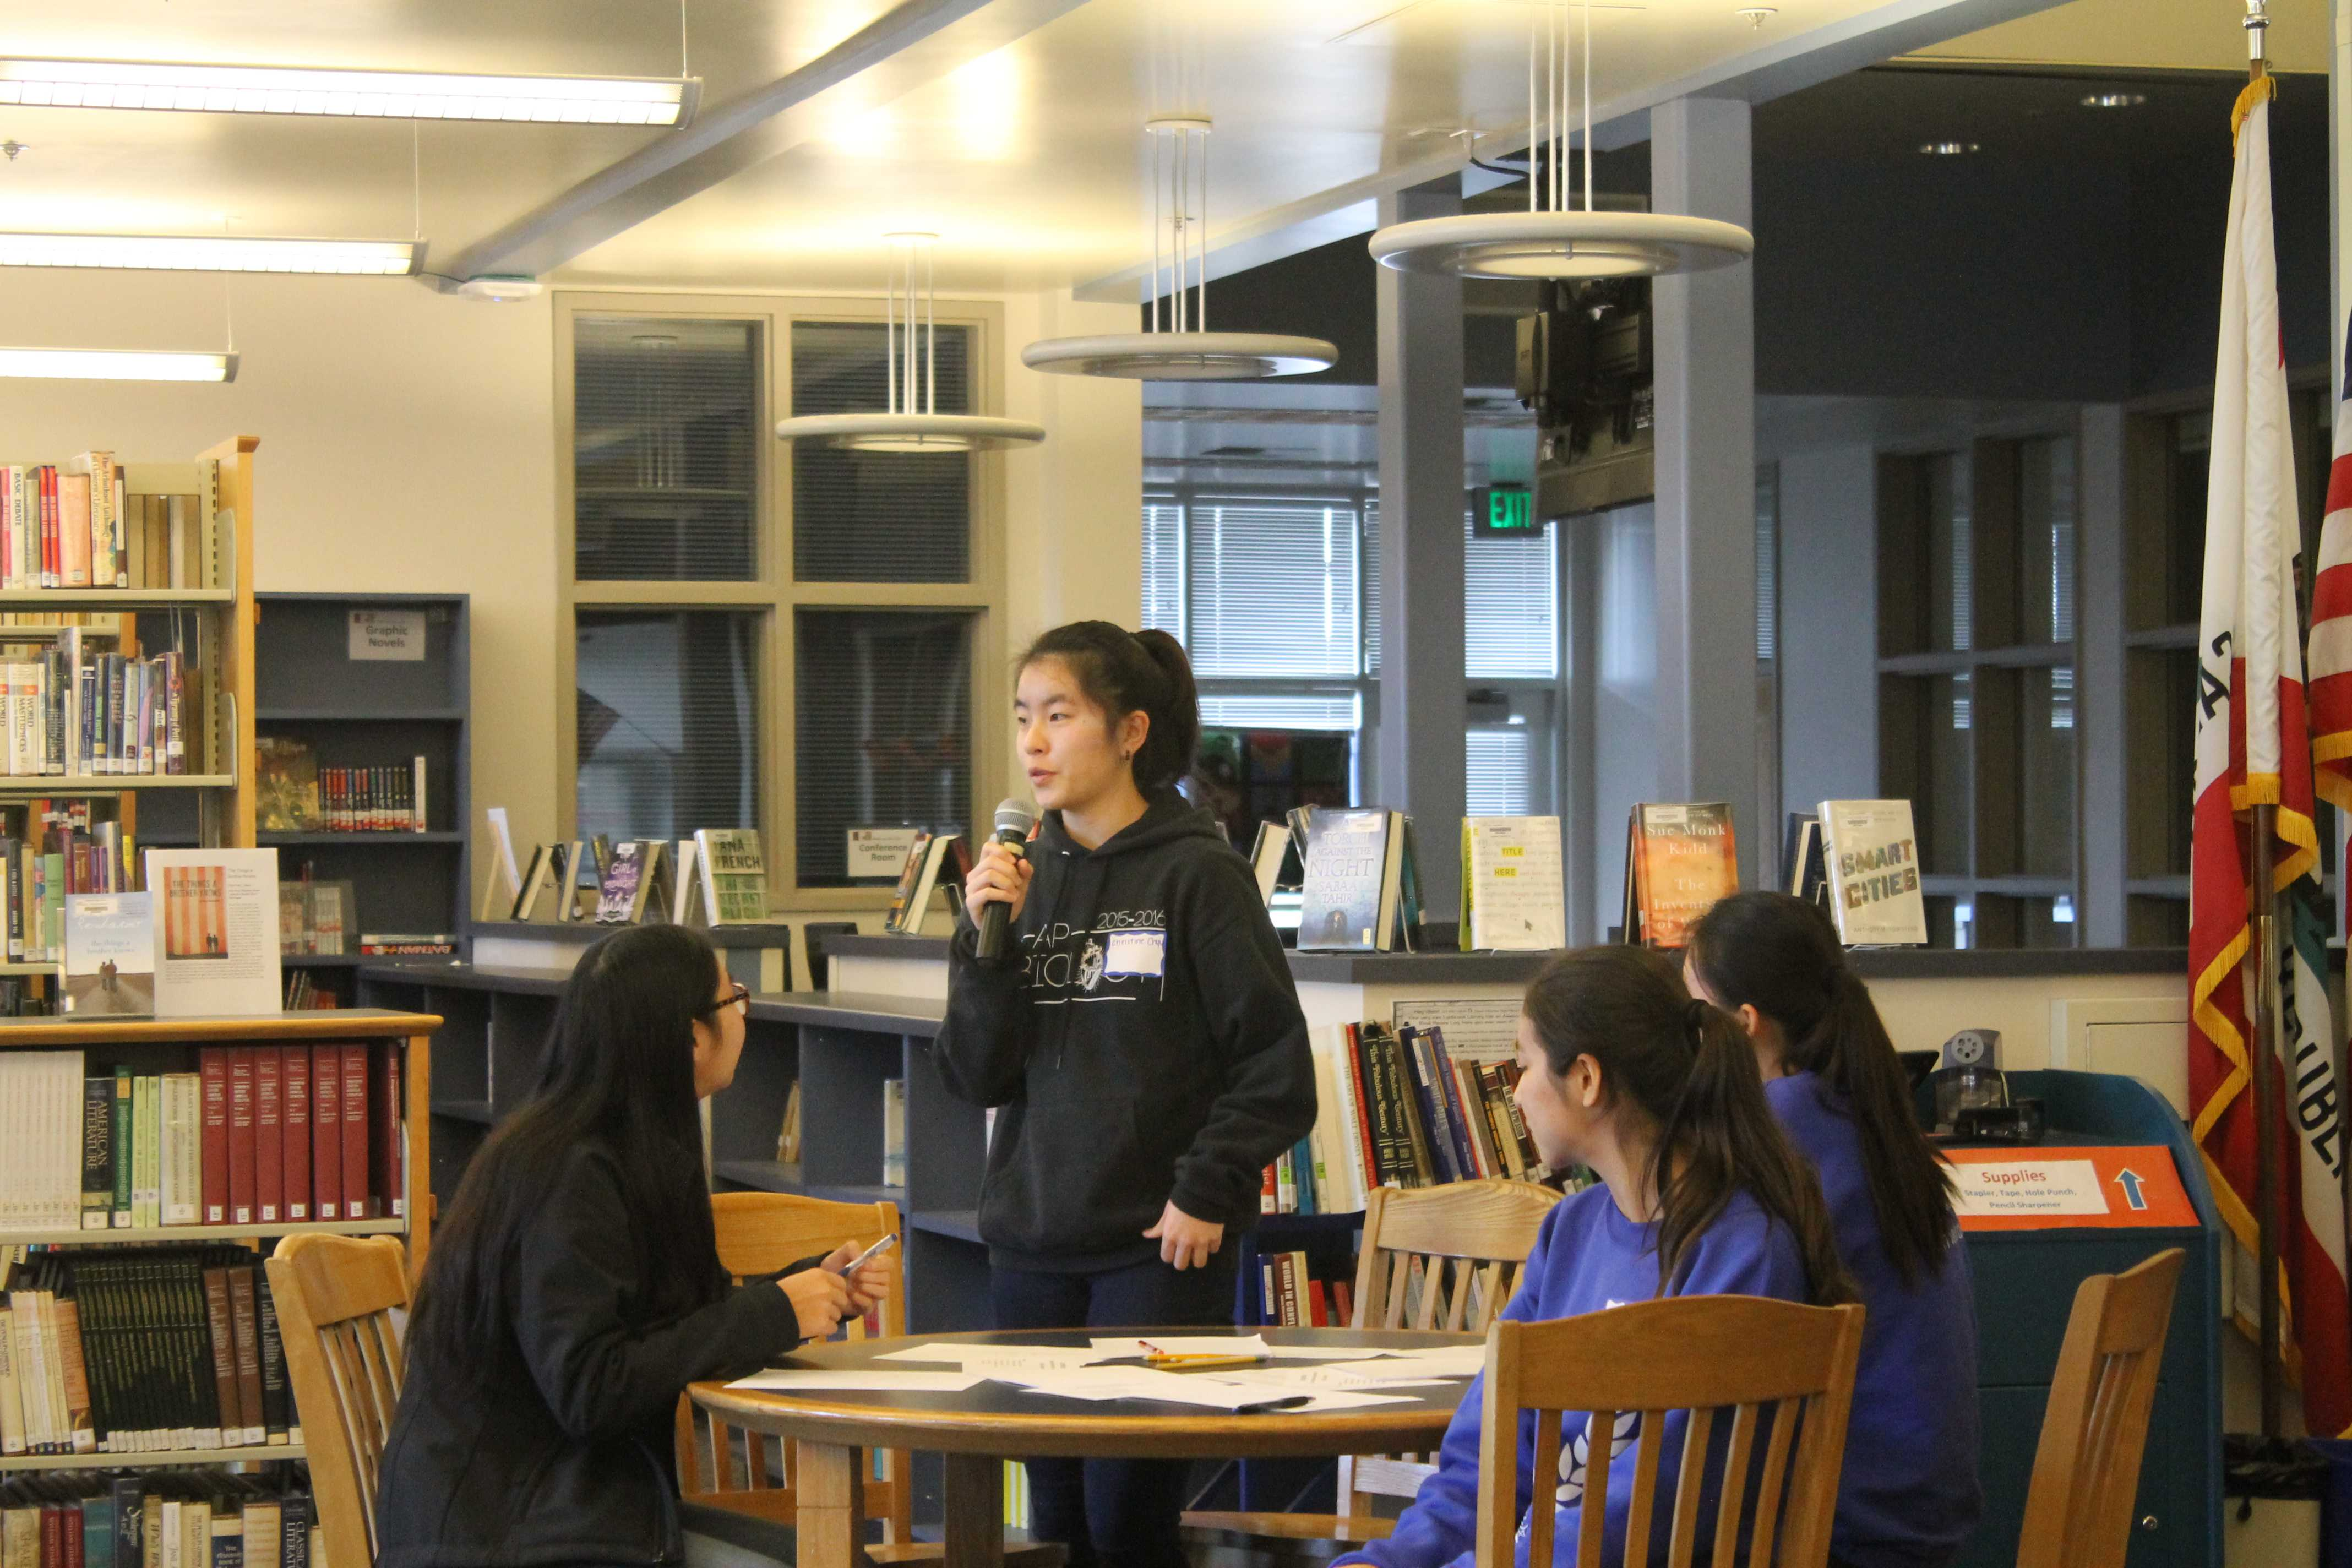 French Honor Society takes part in debate at Lynbrook HS